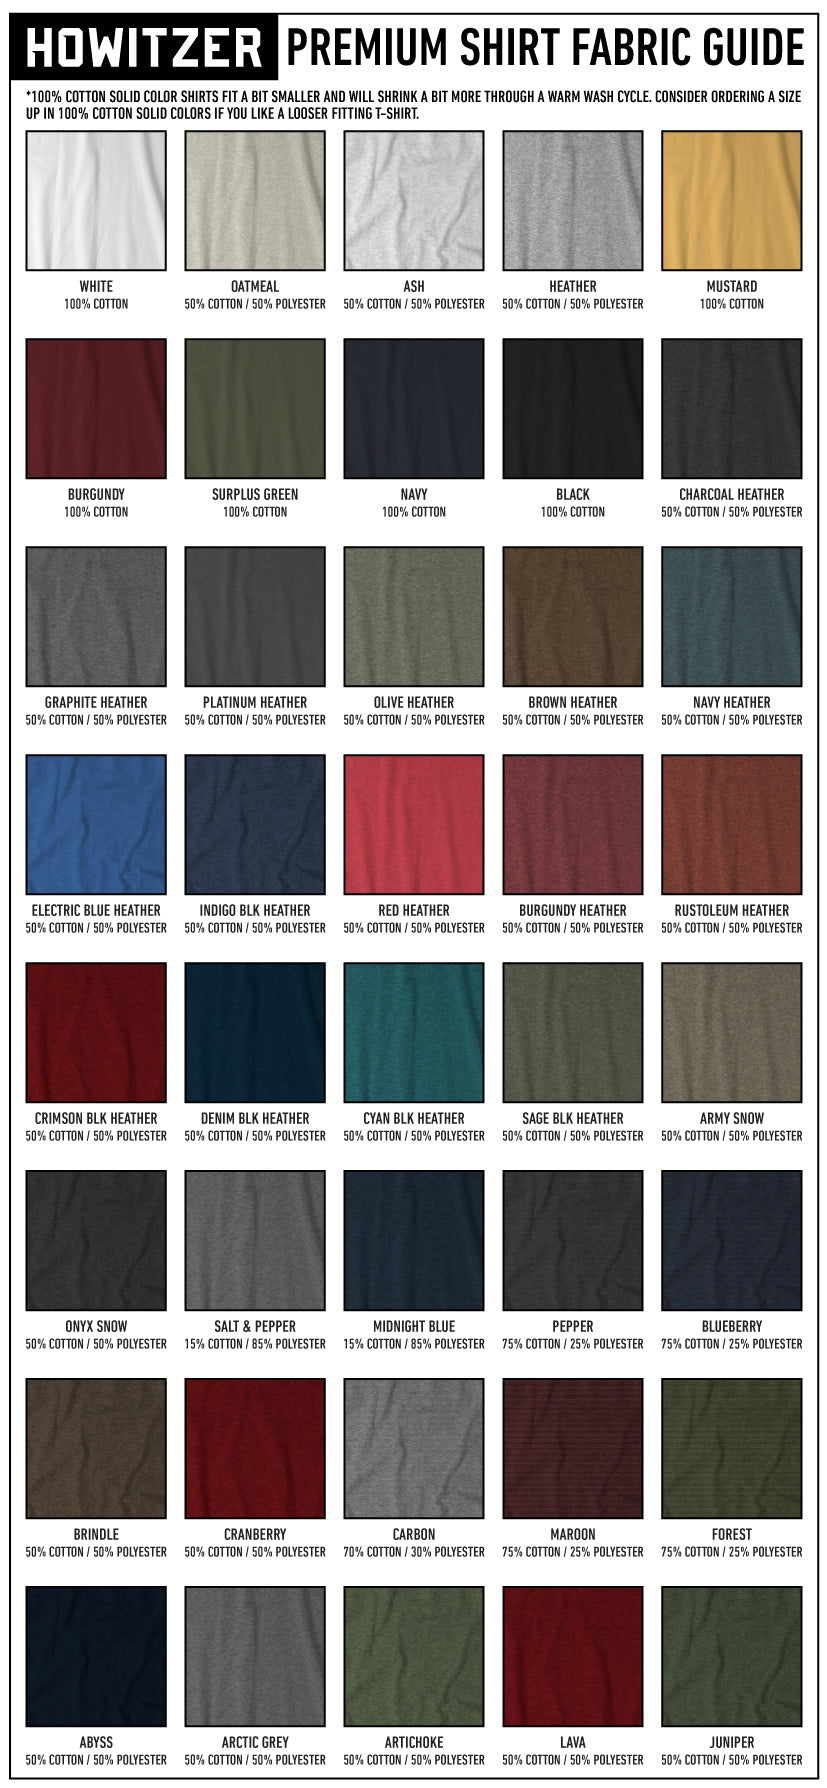 howitzer fabric guide on color blends and cotton or polyester composition